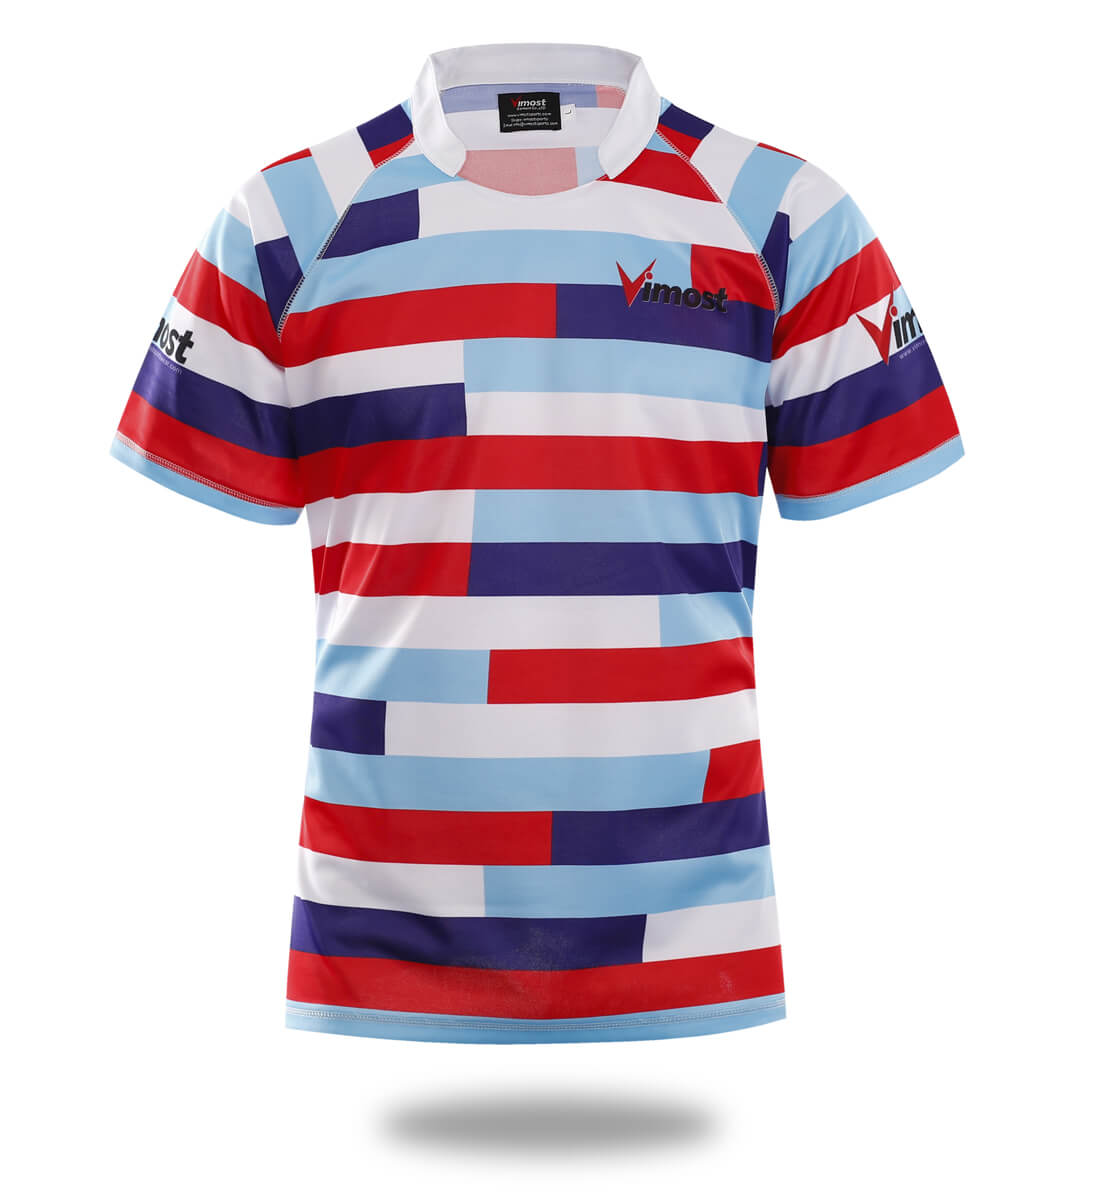 e58b0bff92 Sublimated Three Color stripes Design rugby Jersey - Vimost Sports